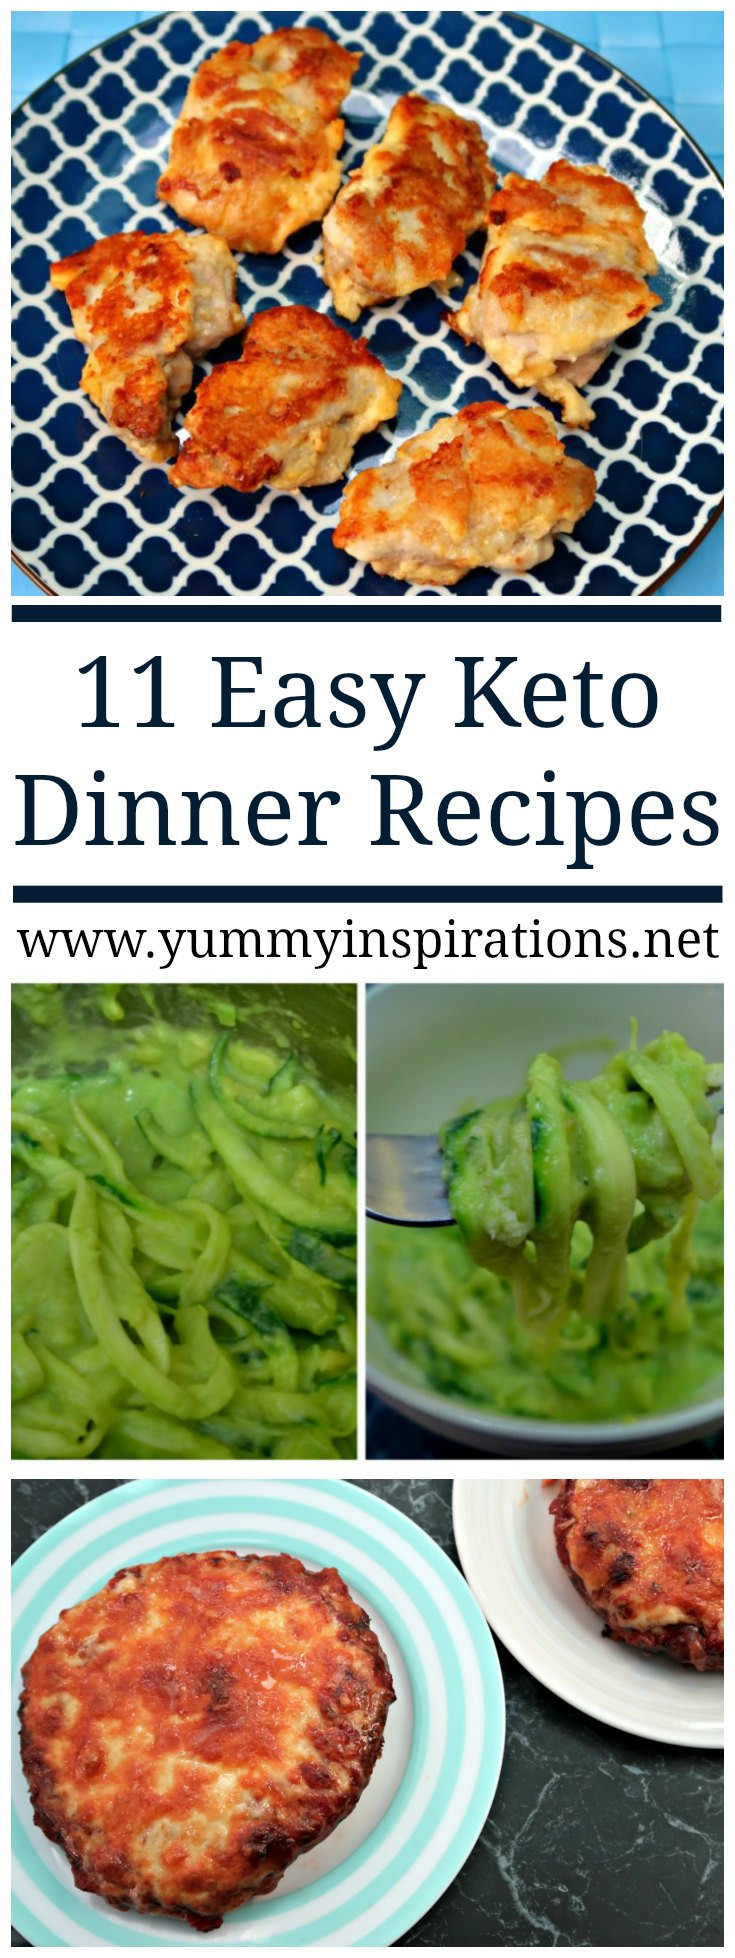 Easy Keto Dinner Recipes  11 Easy Keto Dinner Recipes Quick Low Carb Ketogenic